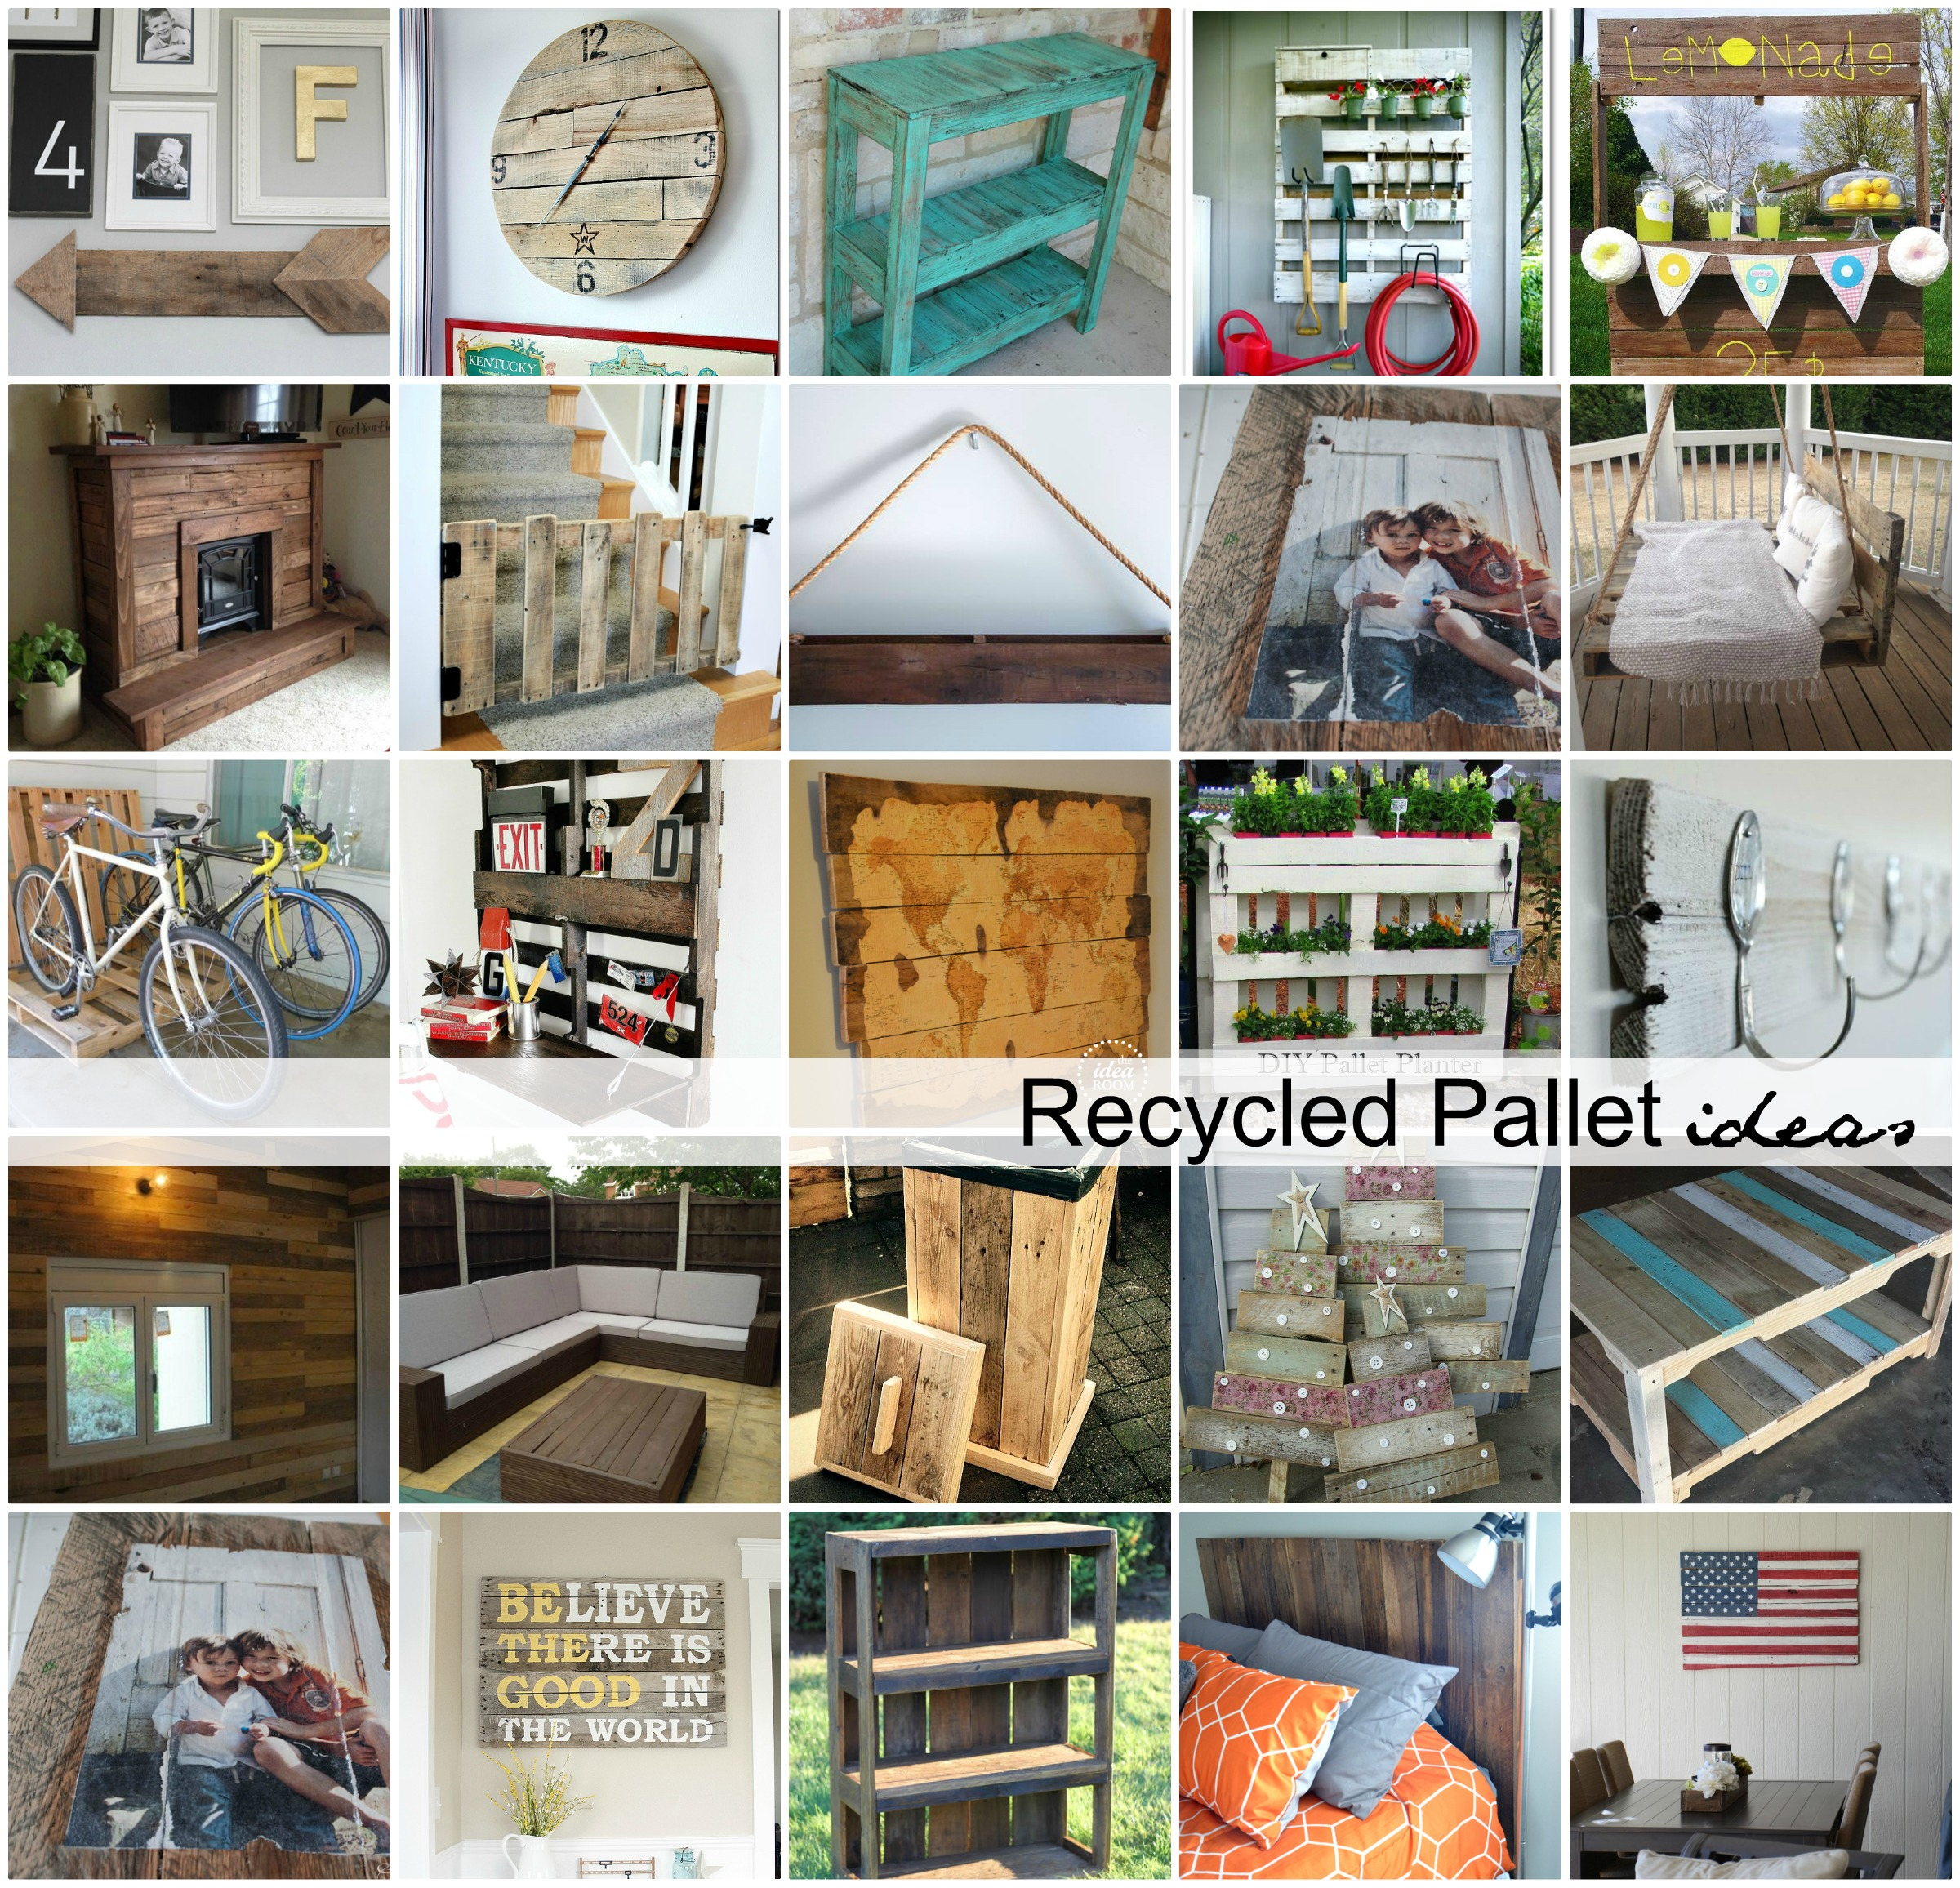 Recycled-Pallet-Board-Ideas-Projects1 (1)